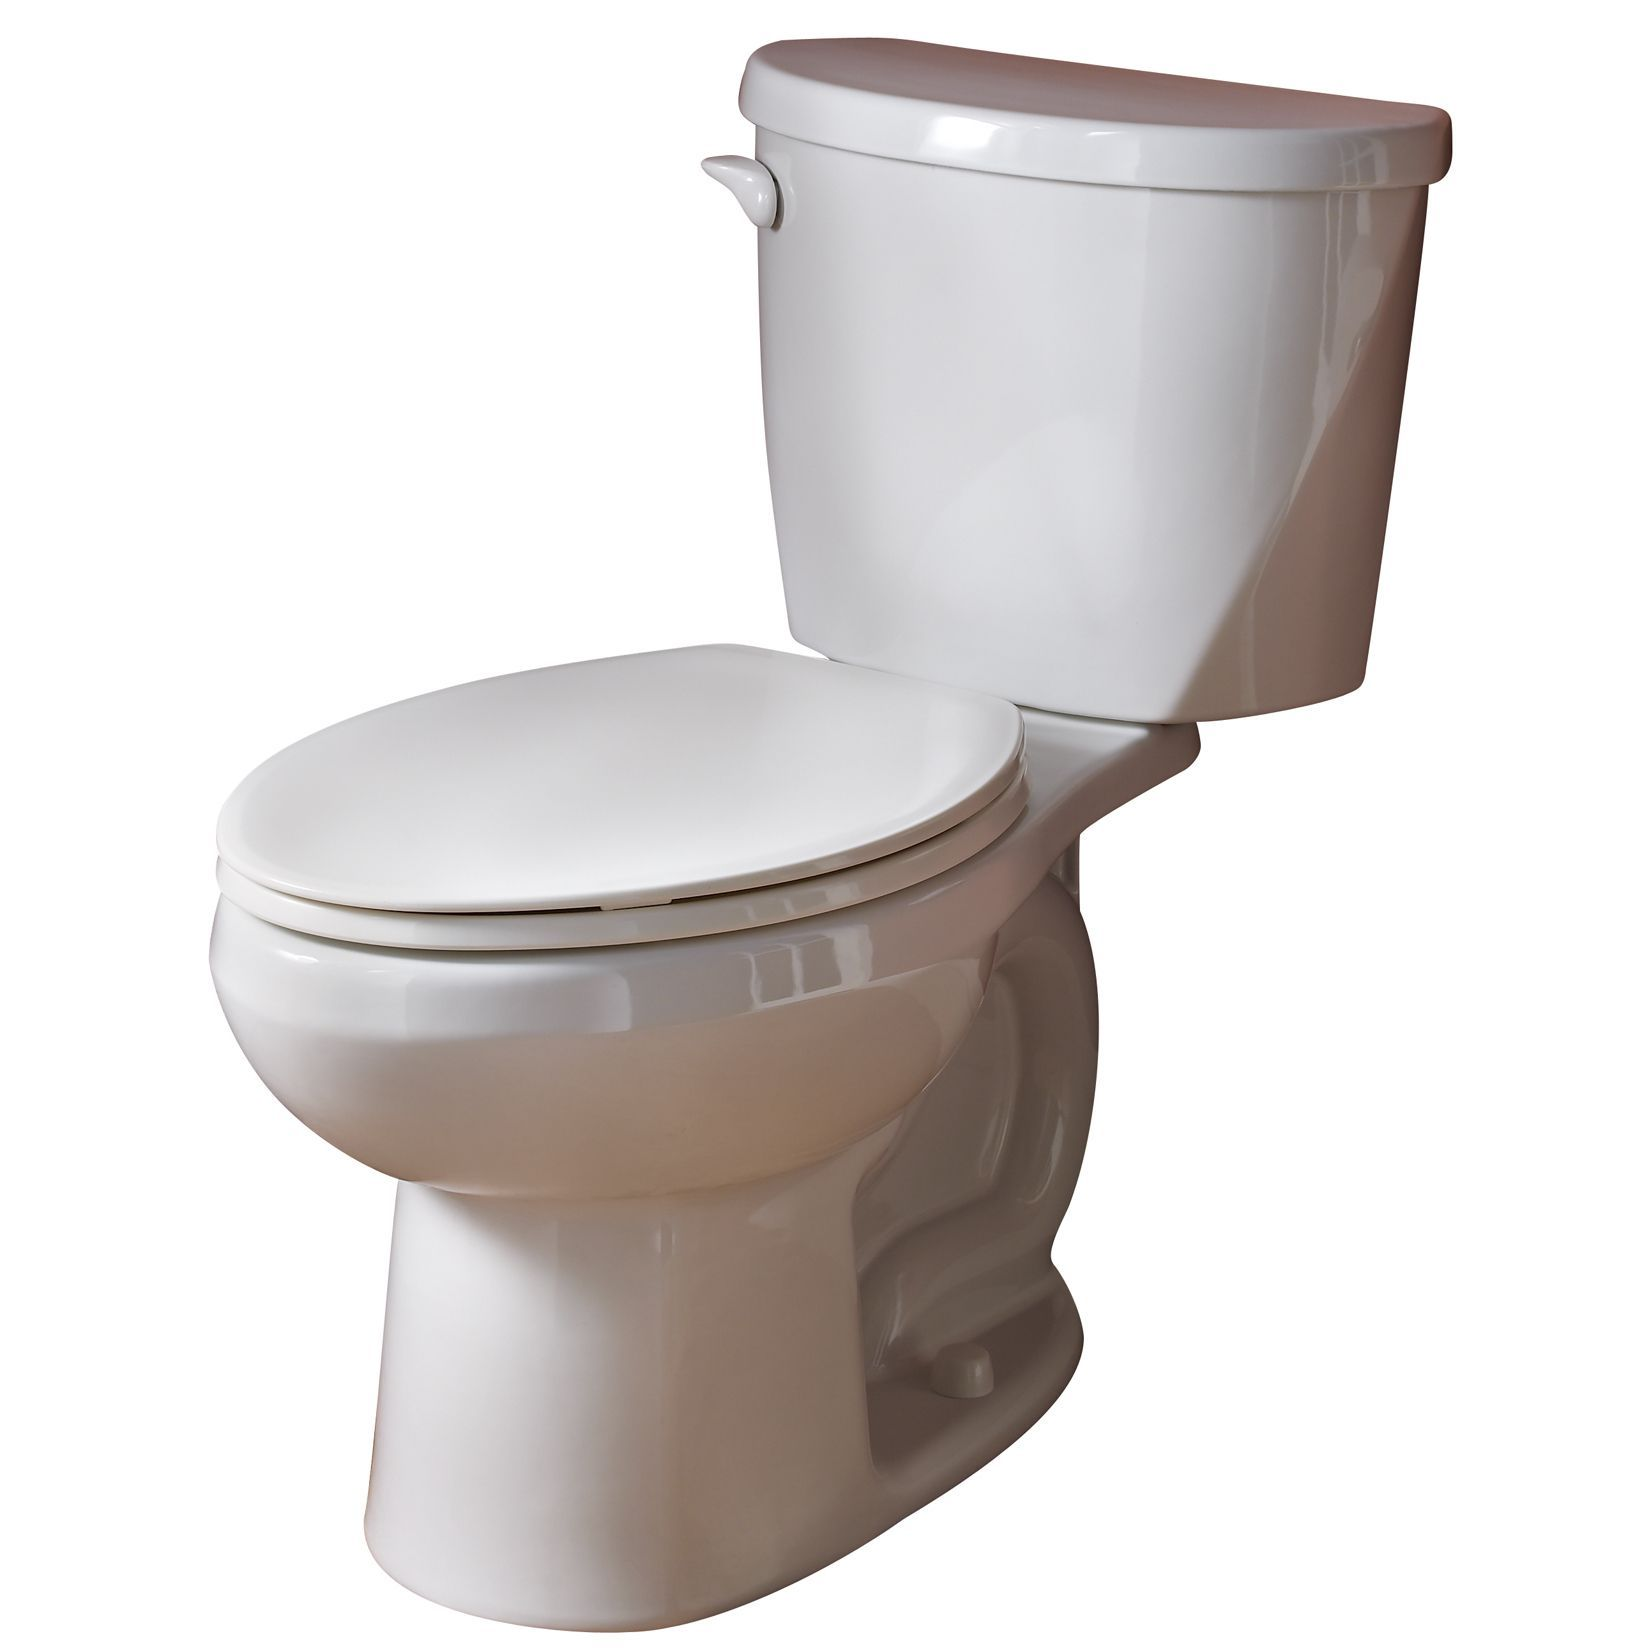 American Standard 020 White Elongated Toilet To Go Toil2go